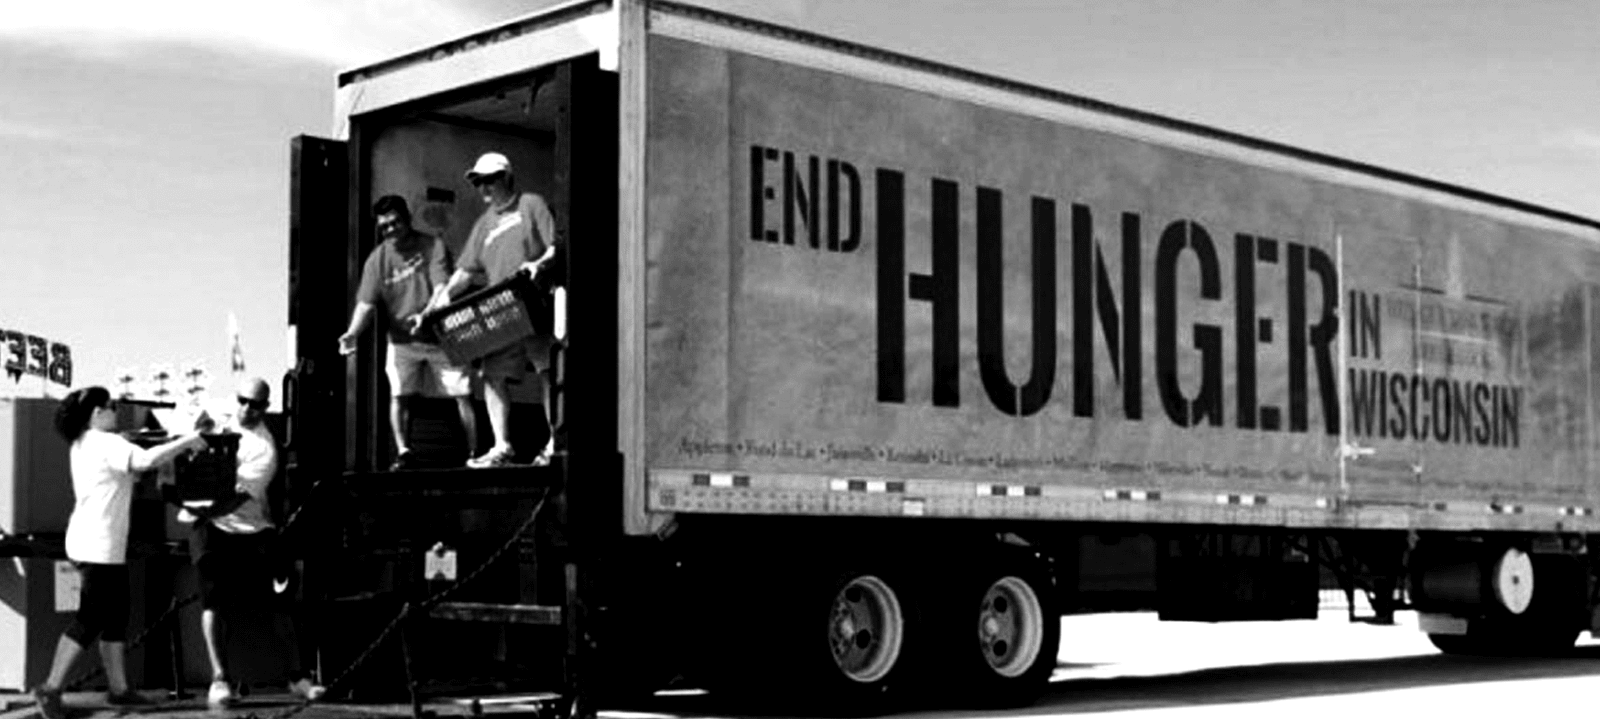 end hunger in wisconsin